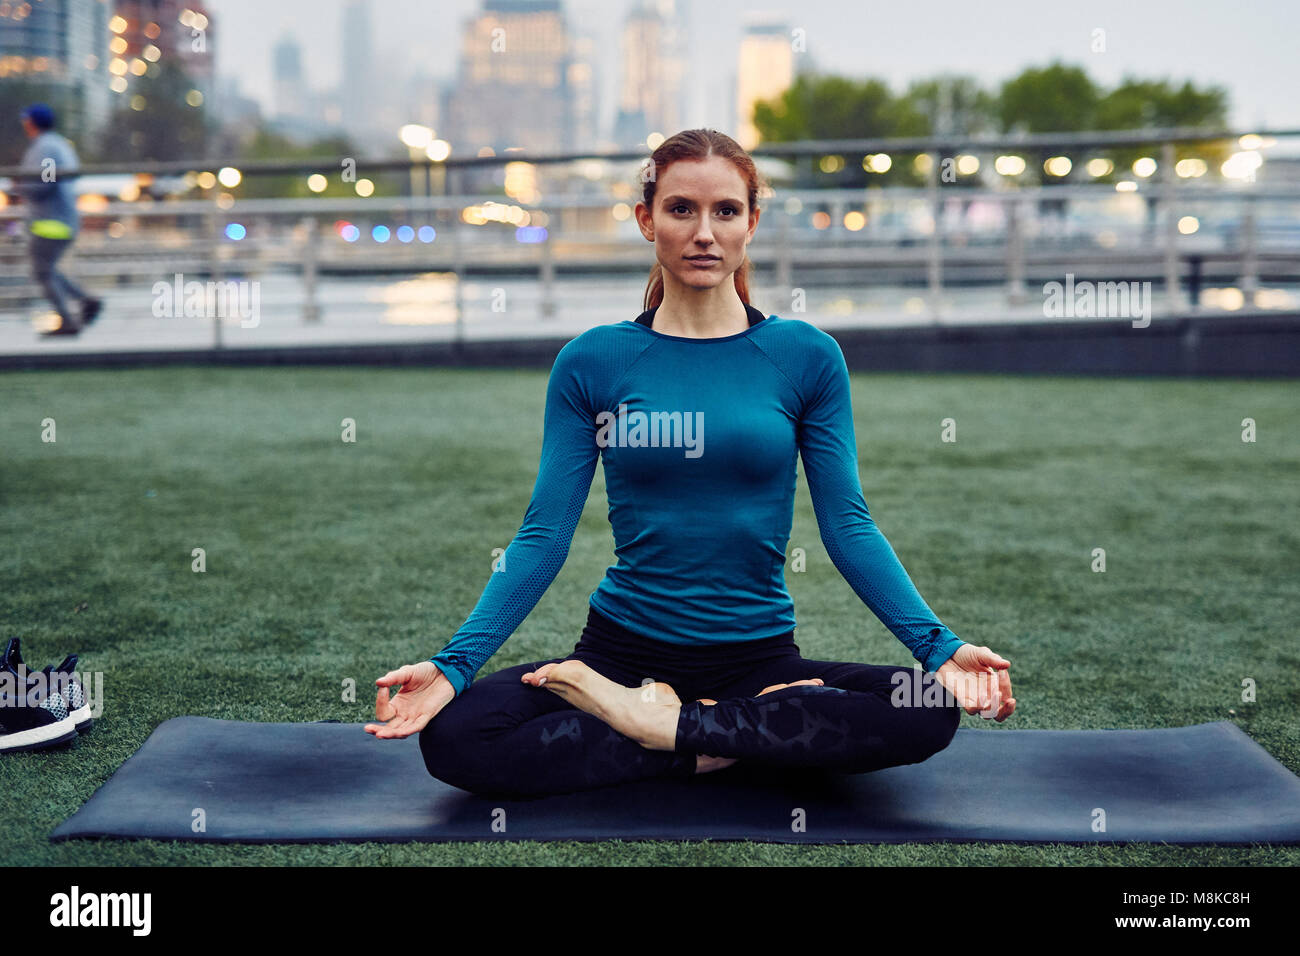 Caucasian Woman Performs Yoga in a Public New York City Park Stock Photo